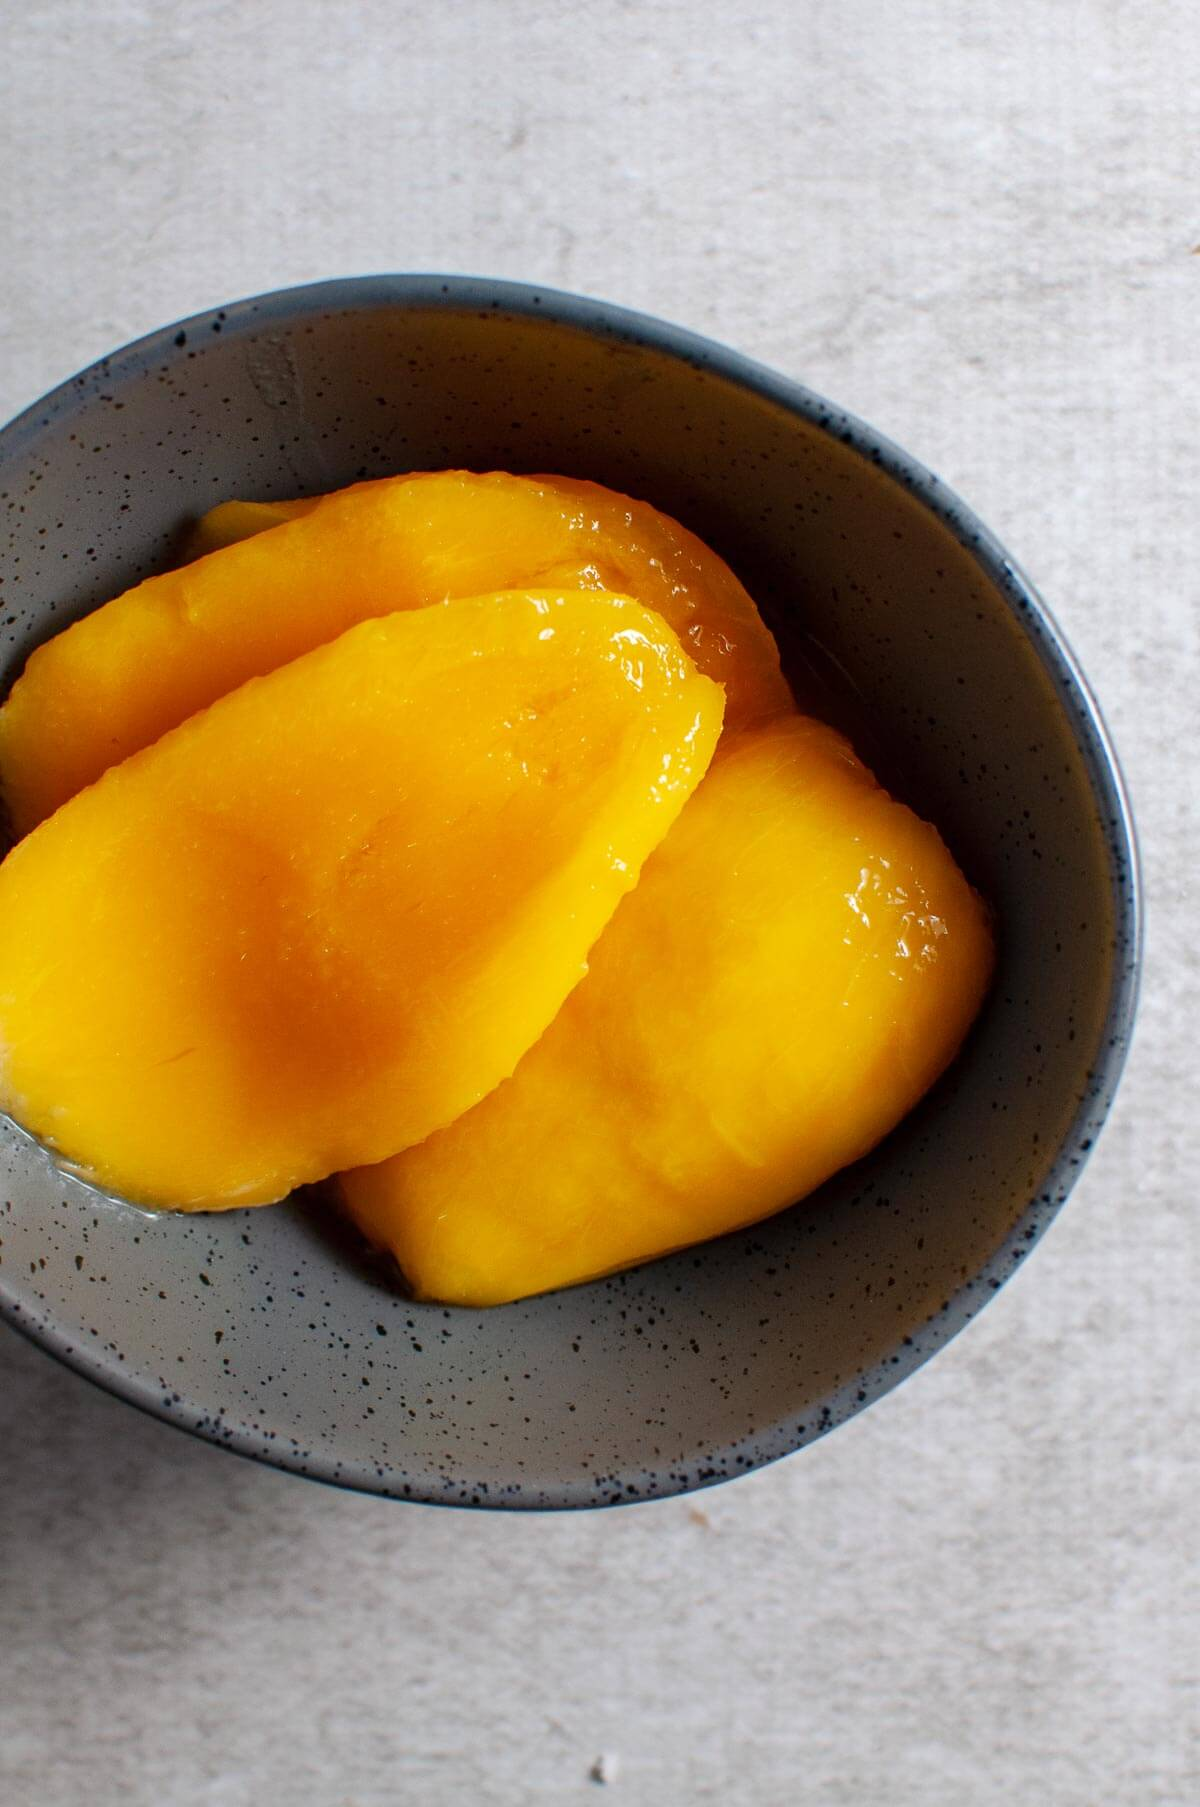 mango cheeks in a bowl